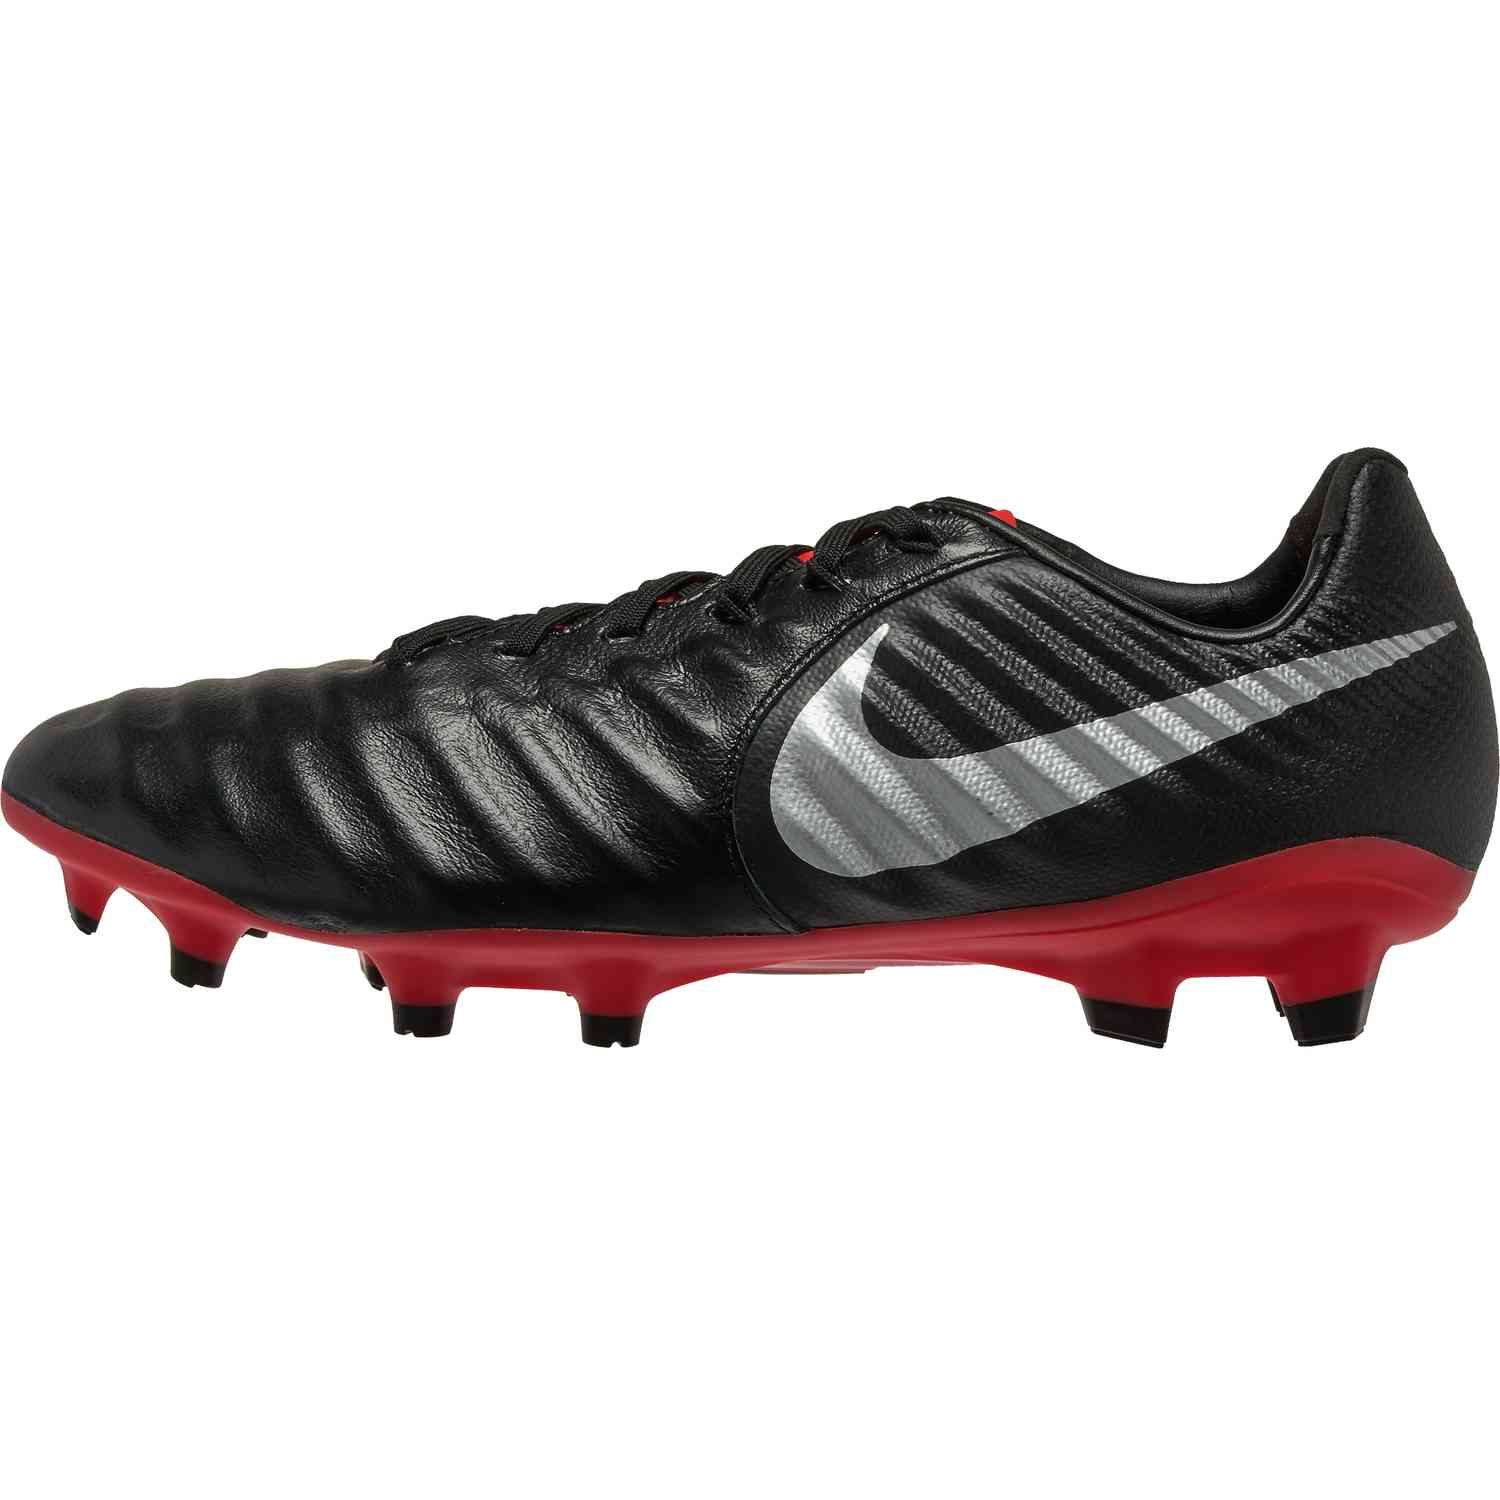 13de1b5f1 Nike Tiempo Legend 7 Pro FG - Black Metallic Silver Light Crimson ...